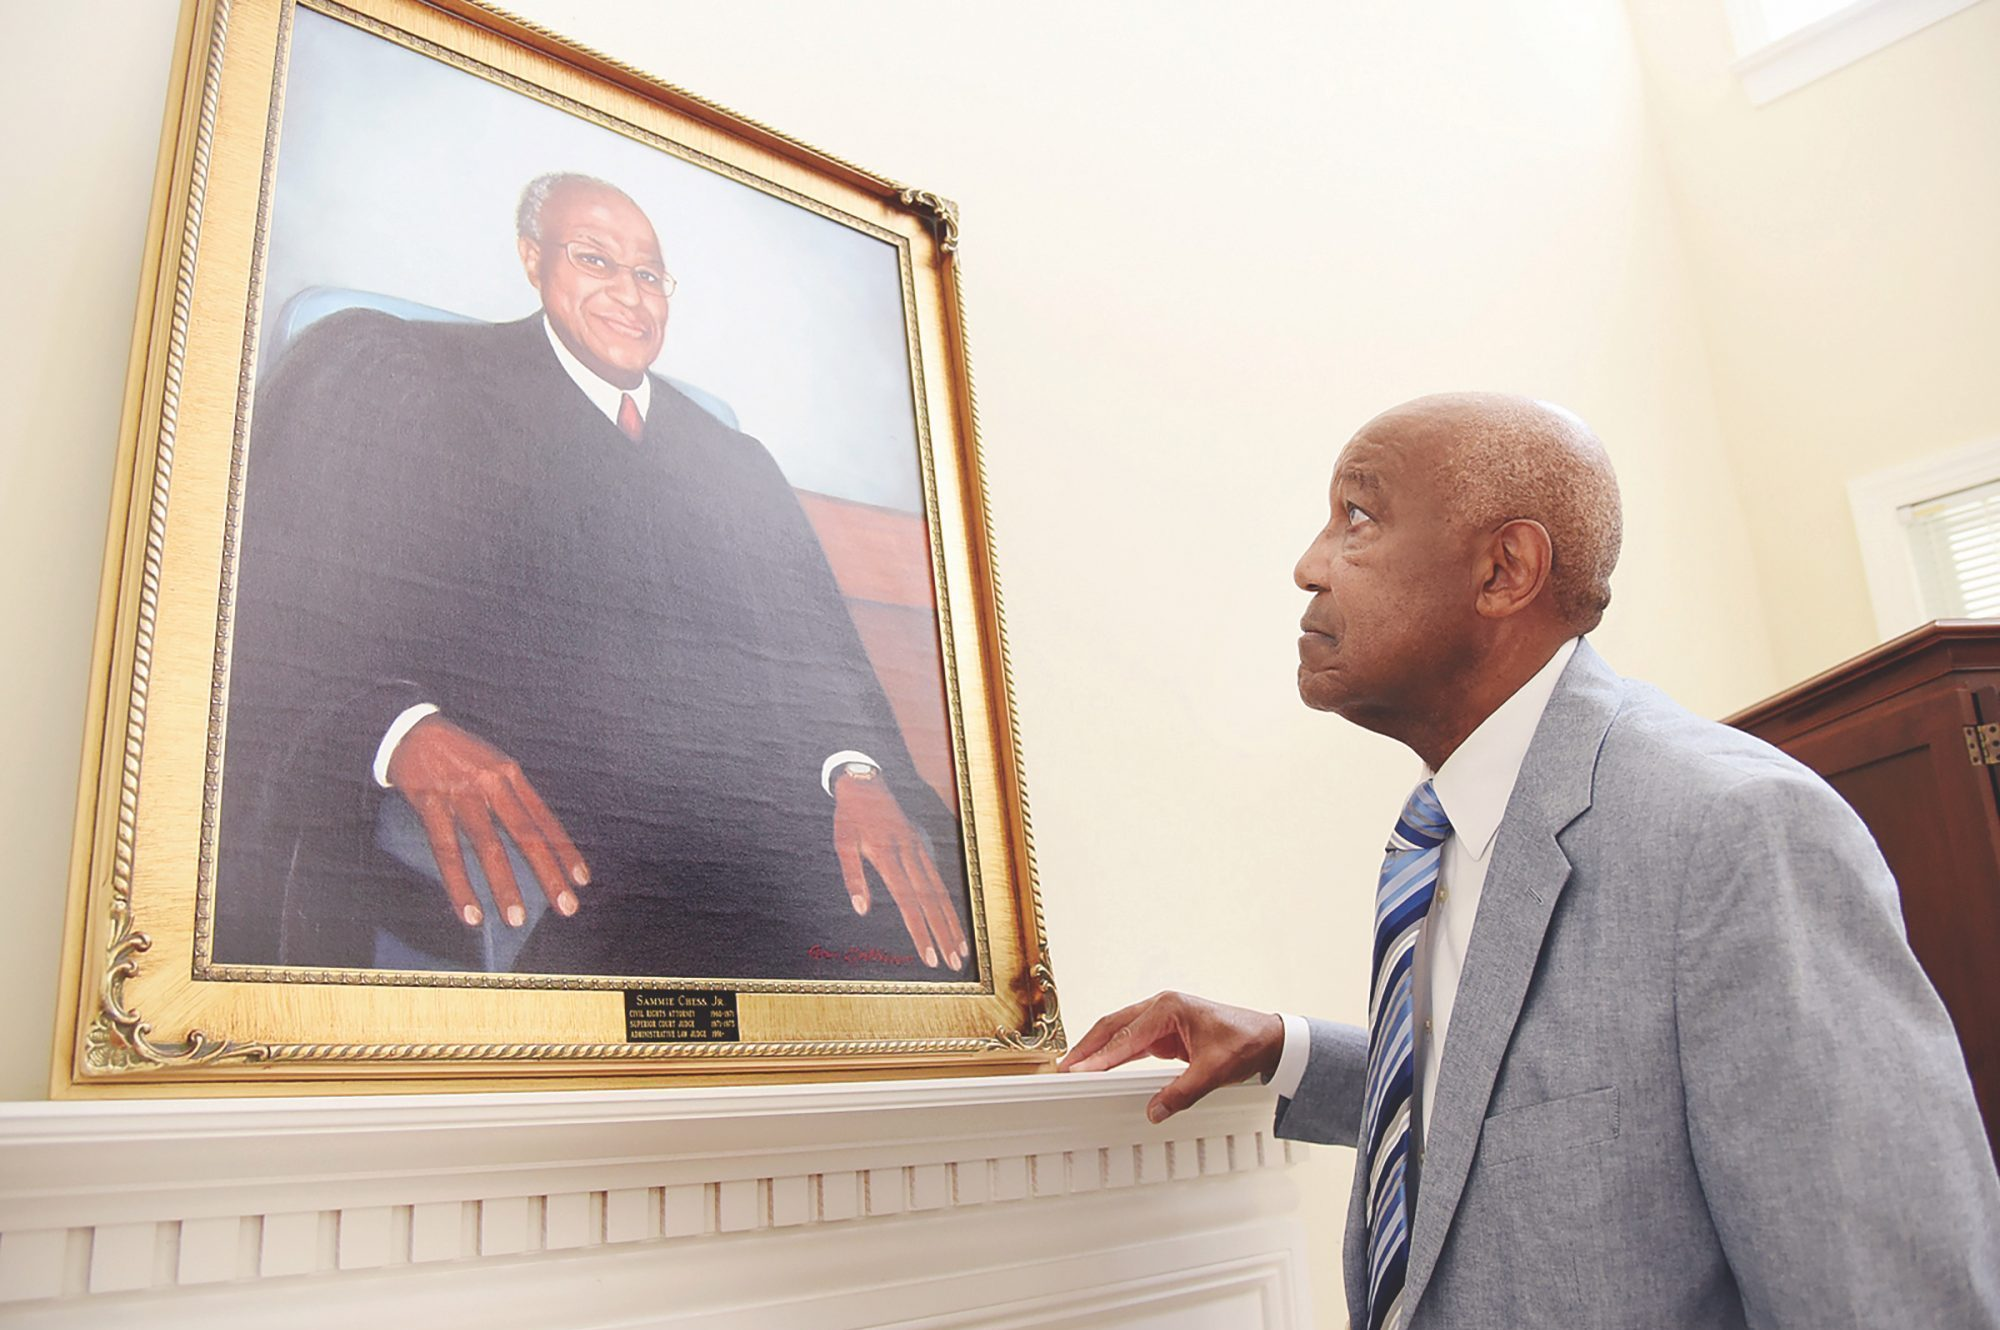 Retired Judge Sammie Chess, Jr., looks up at a painting of his portrait, a copy that hangs over the fireplace mantel at his home in Jamestown. The original painting is on display at the Guilford Country Courthouse in High Point.